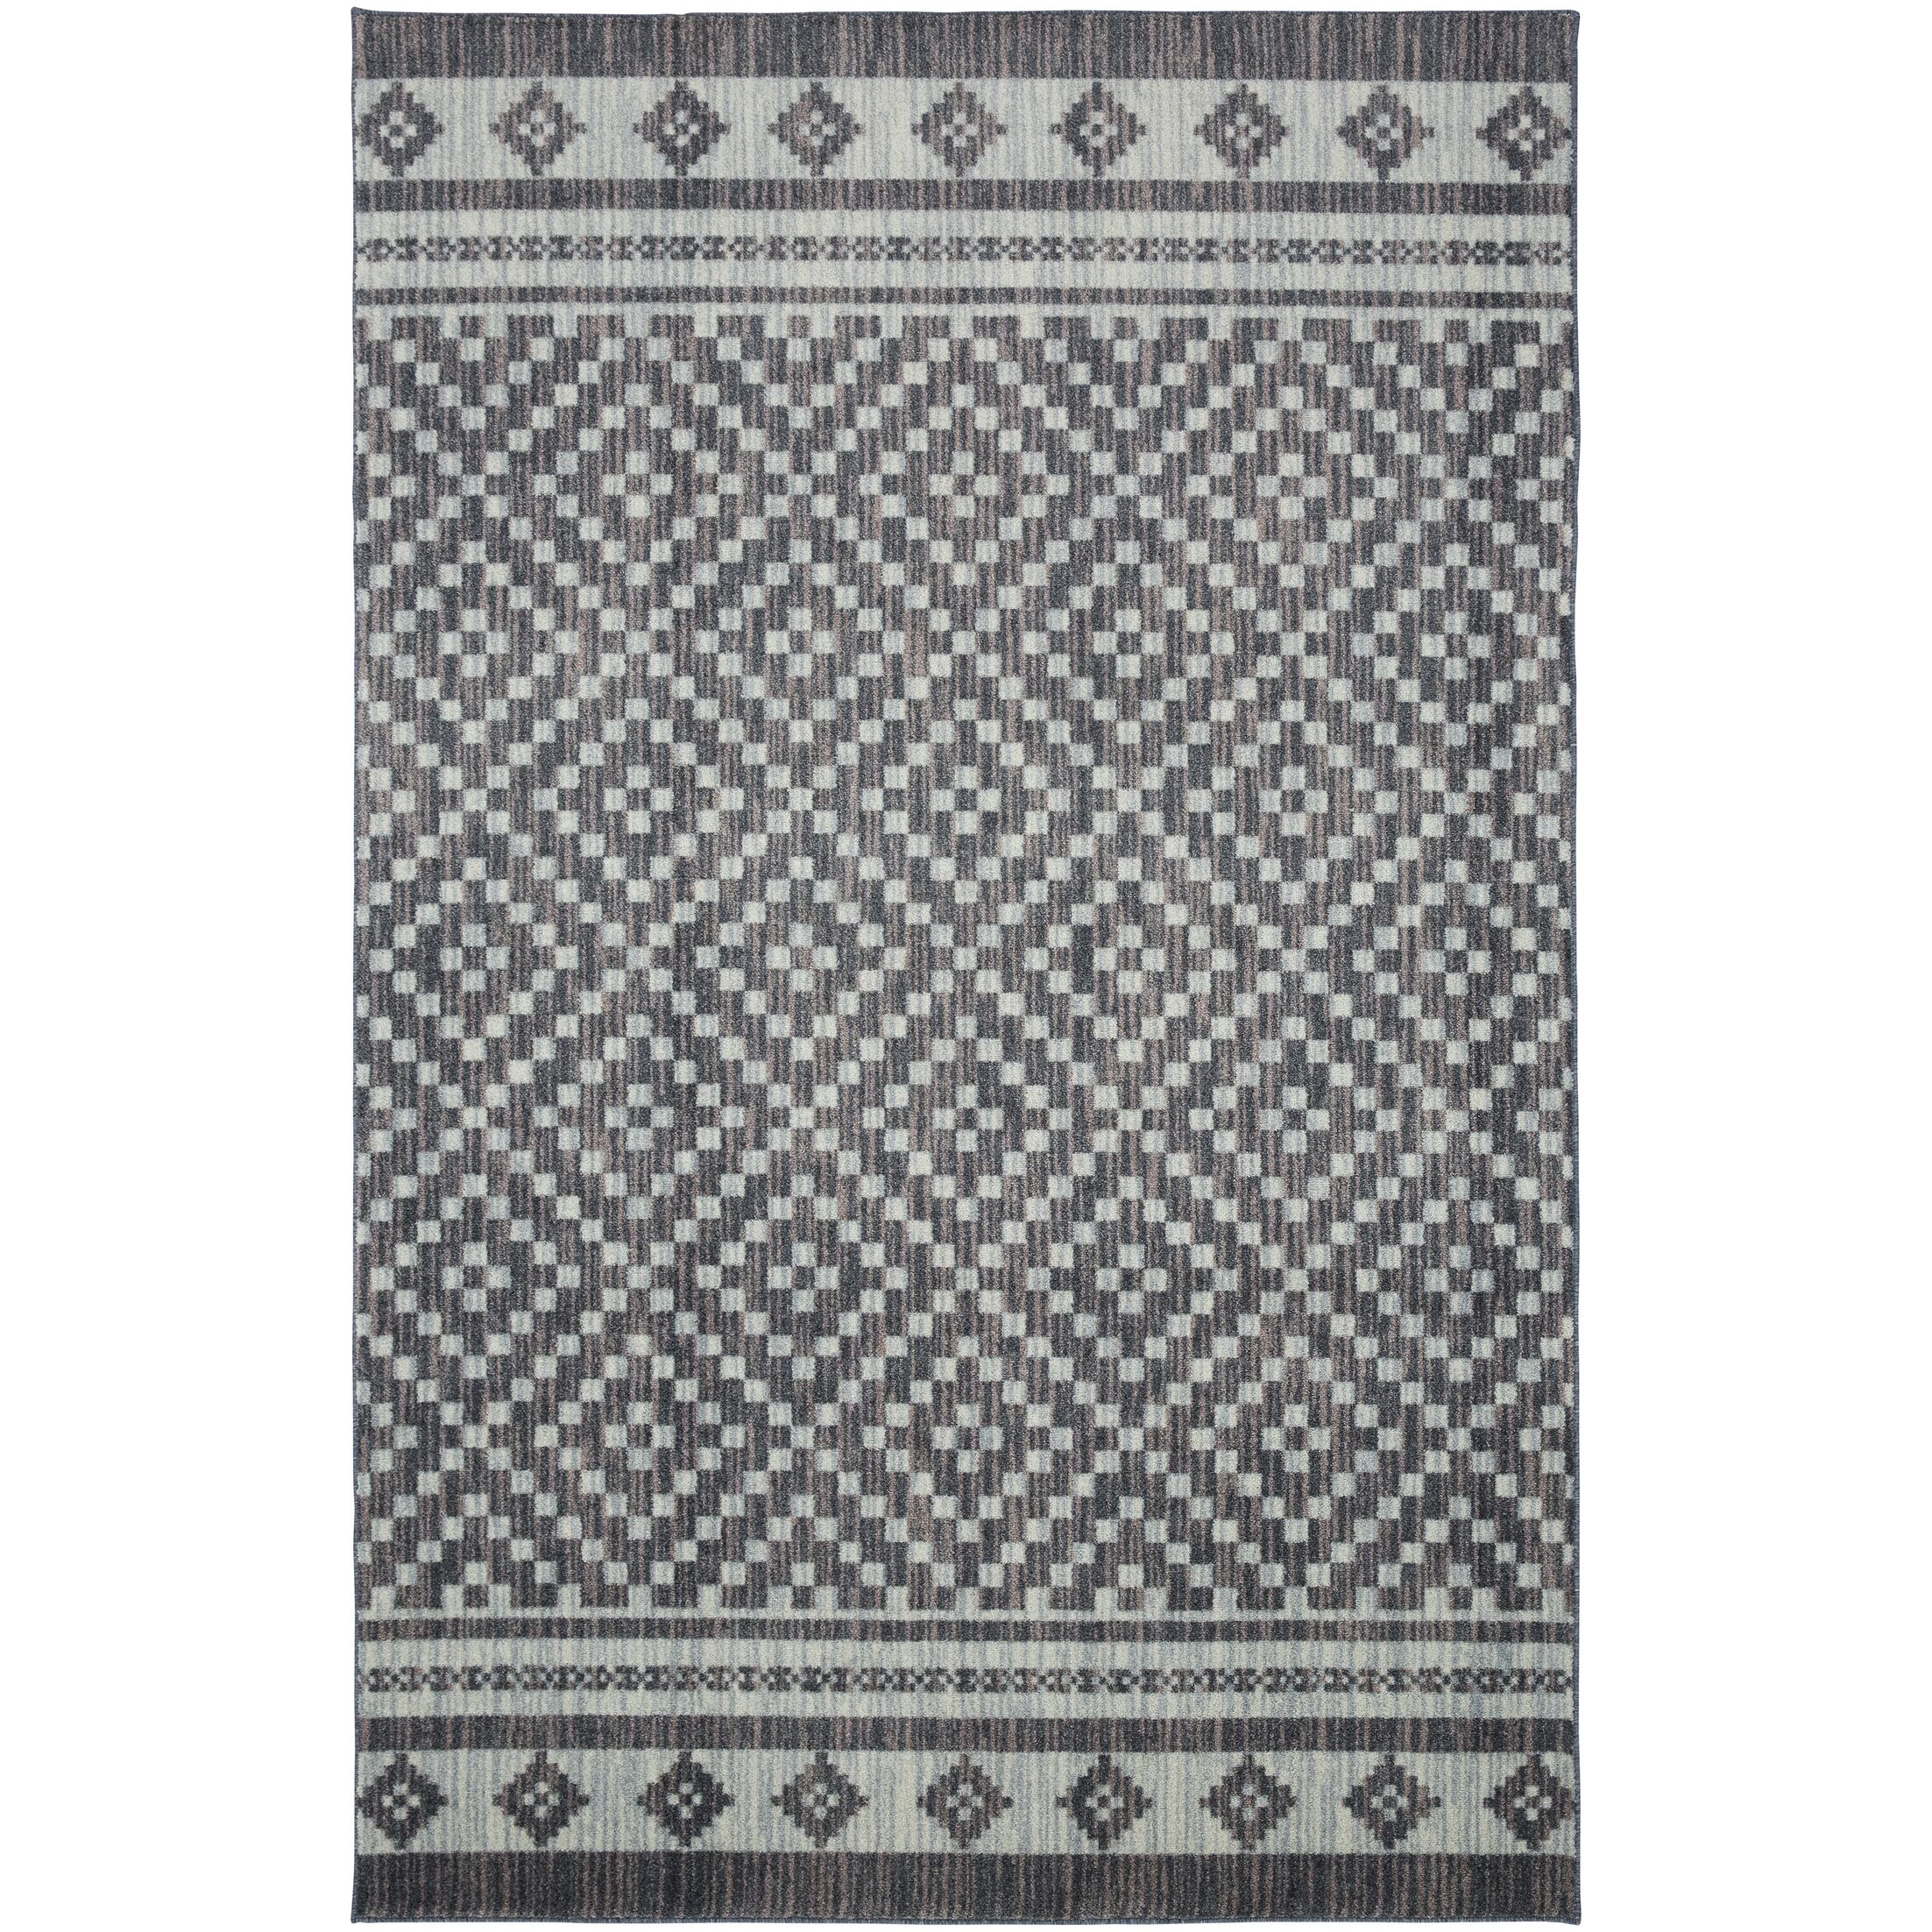 Weinmann Gray/Blue Area Rug Rug Size: Rectangle 8' x 10'